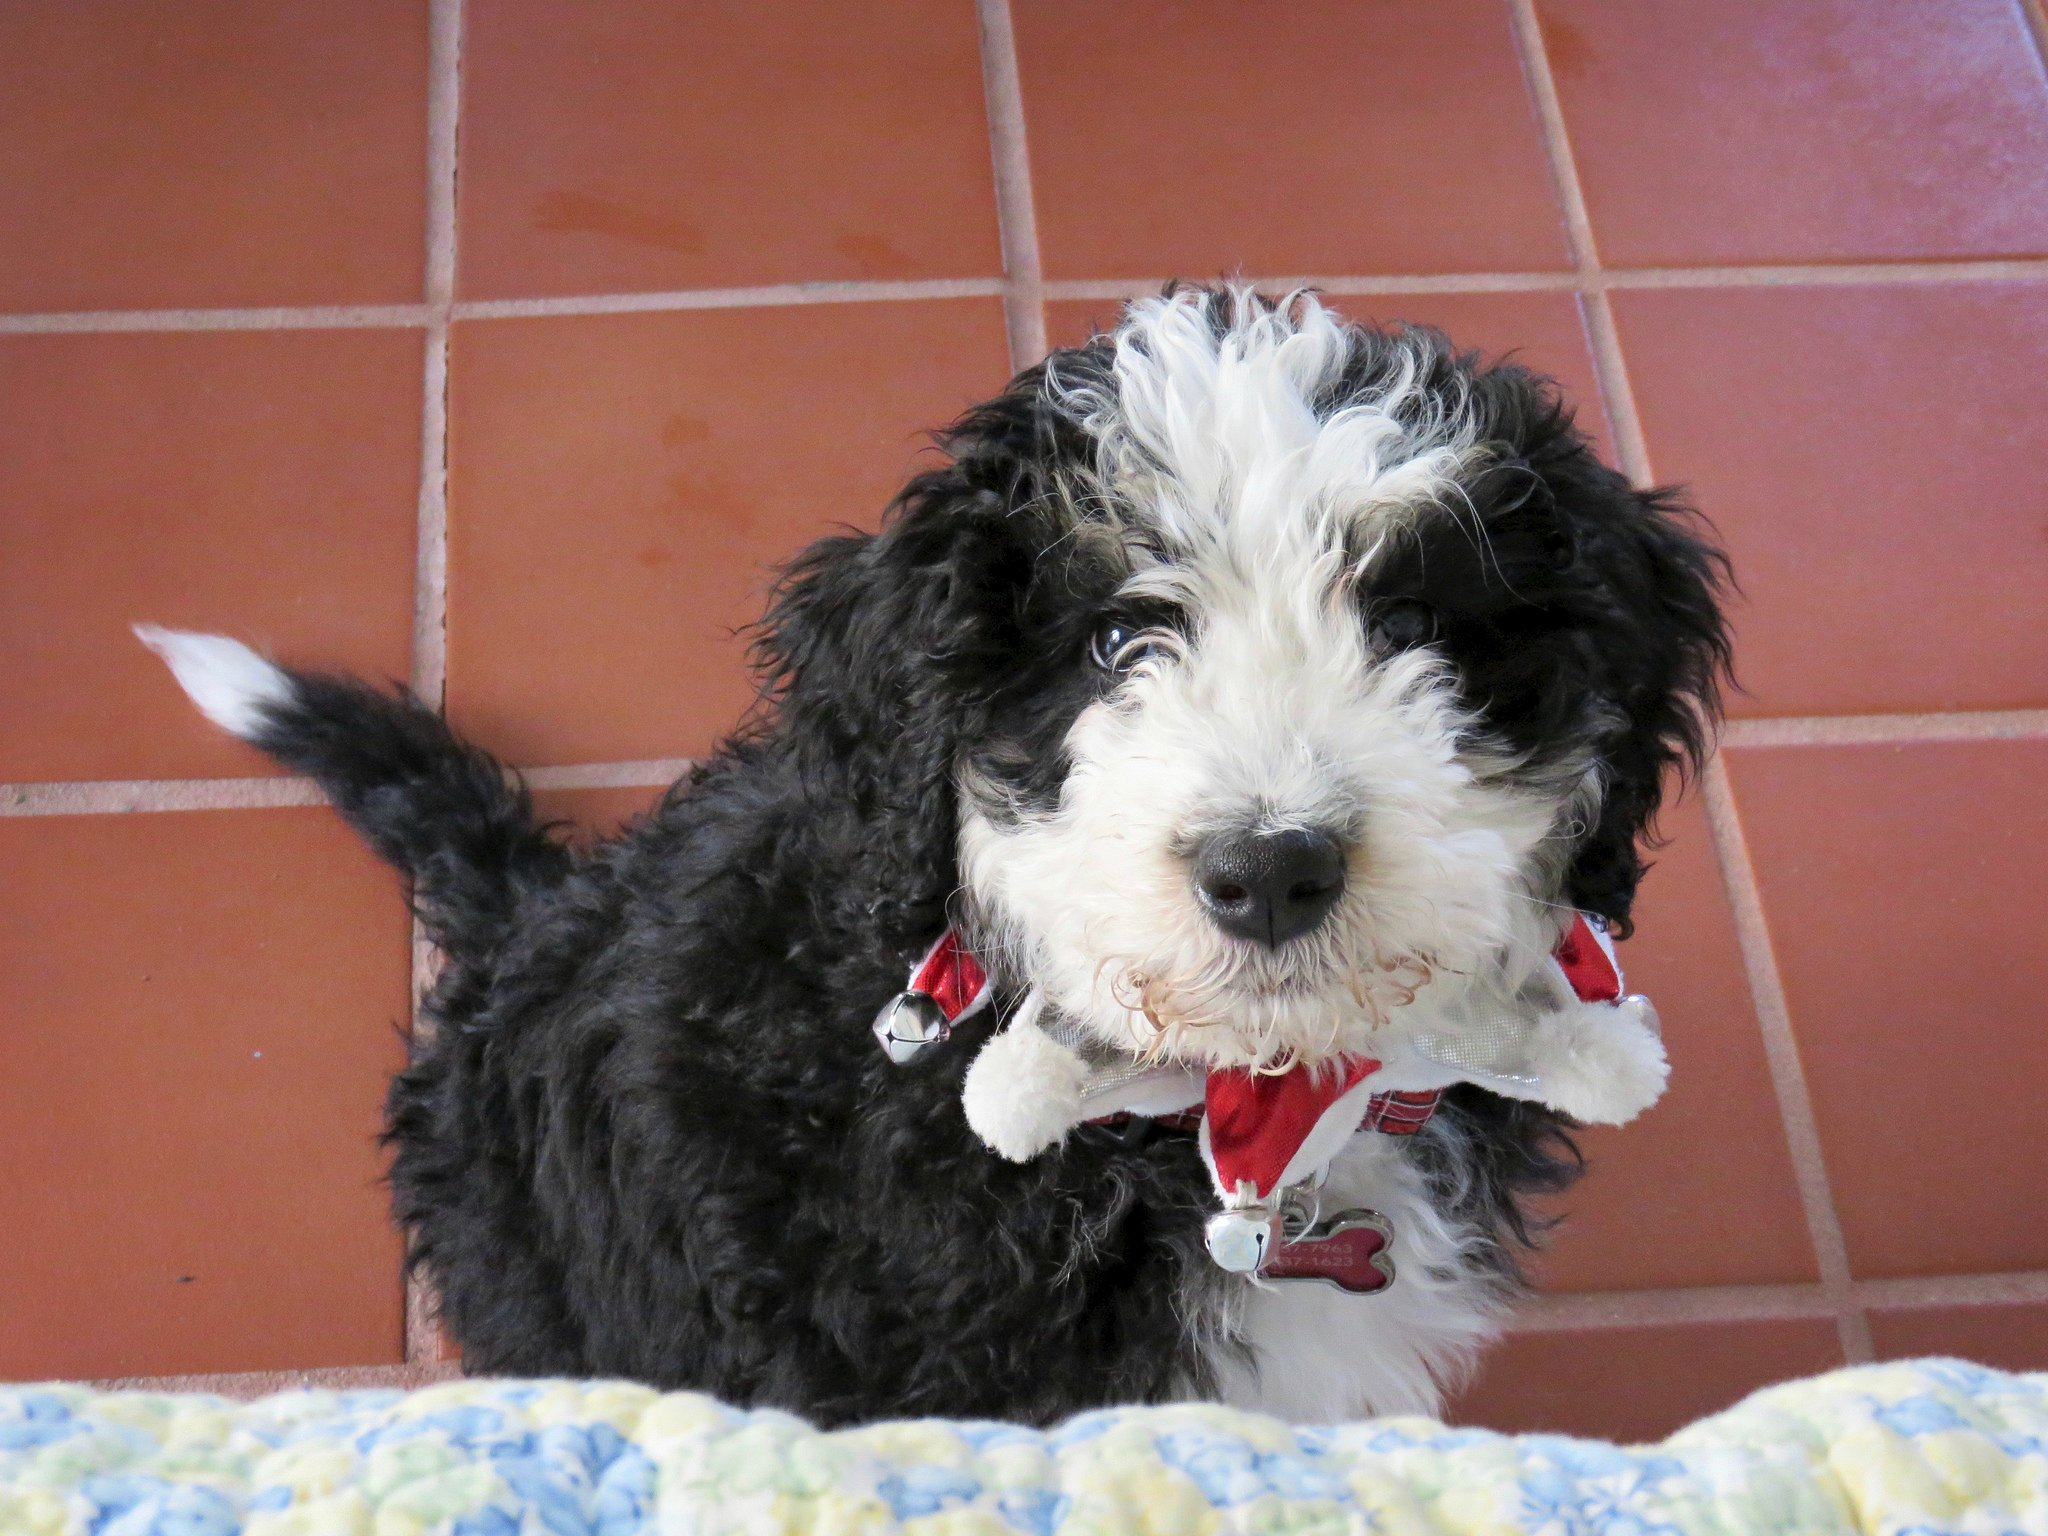 The Popular mini bernedoodle Georgie